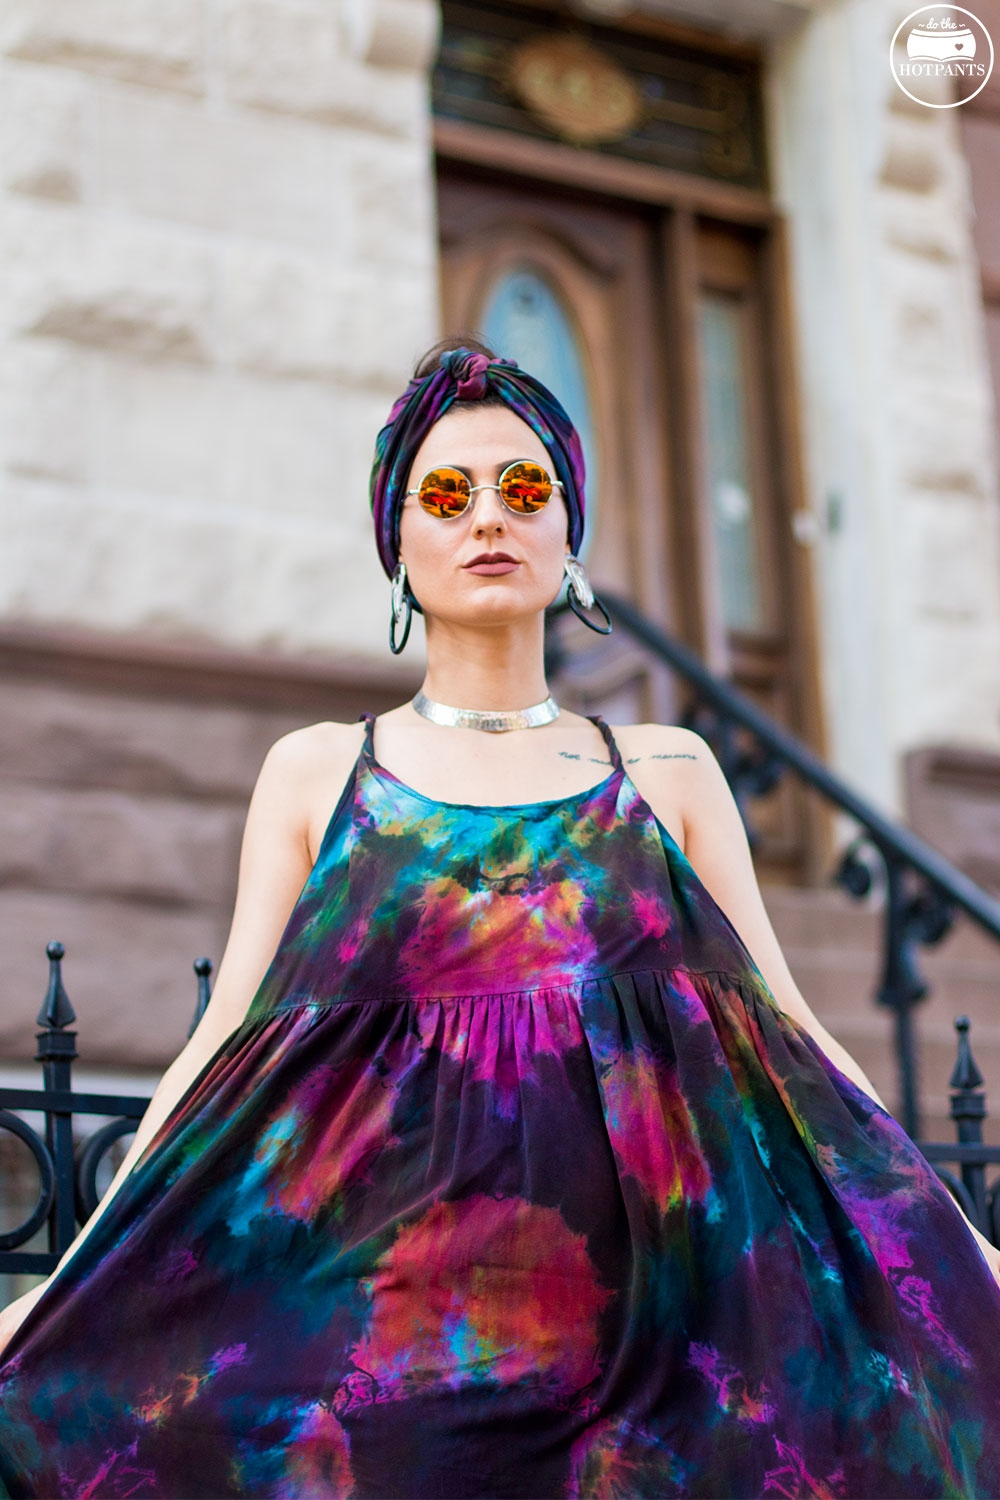 Do The Hotpants Dana Suchow Tie Dye Dress Maxi Flowy Summer Dress Tiedye Headwrap Turban Fashion IMG_0012